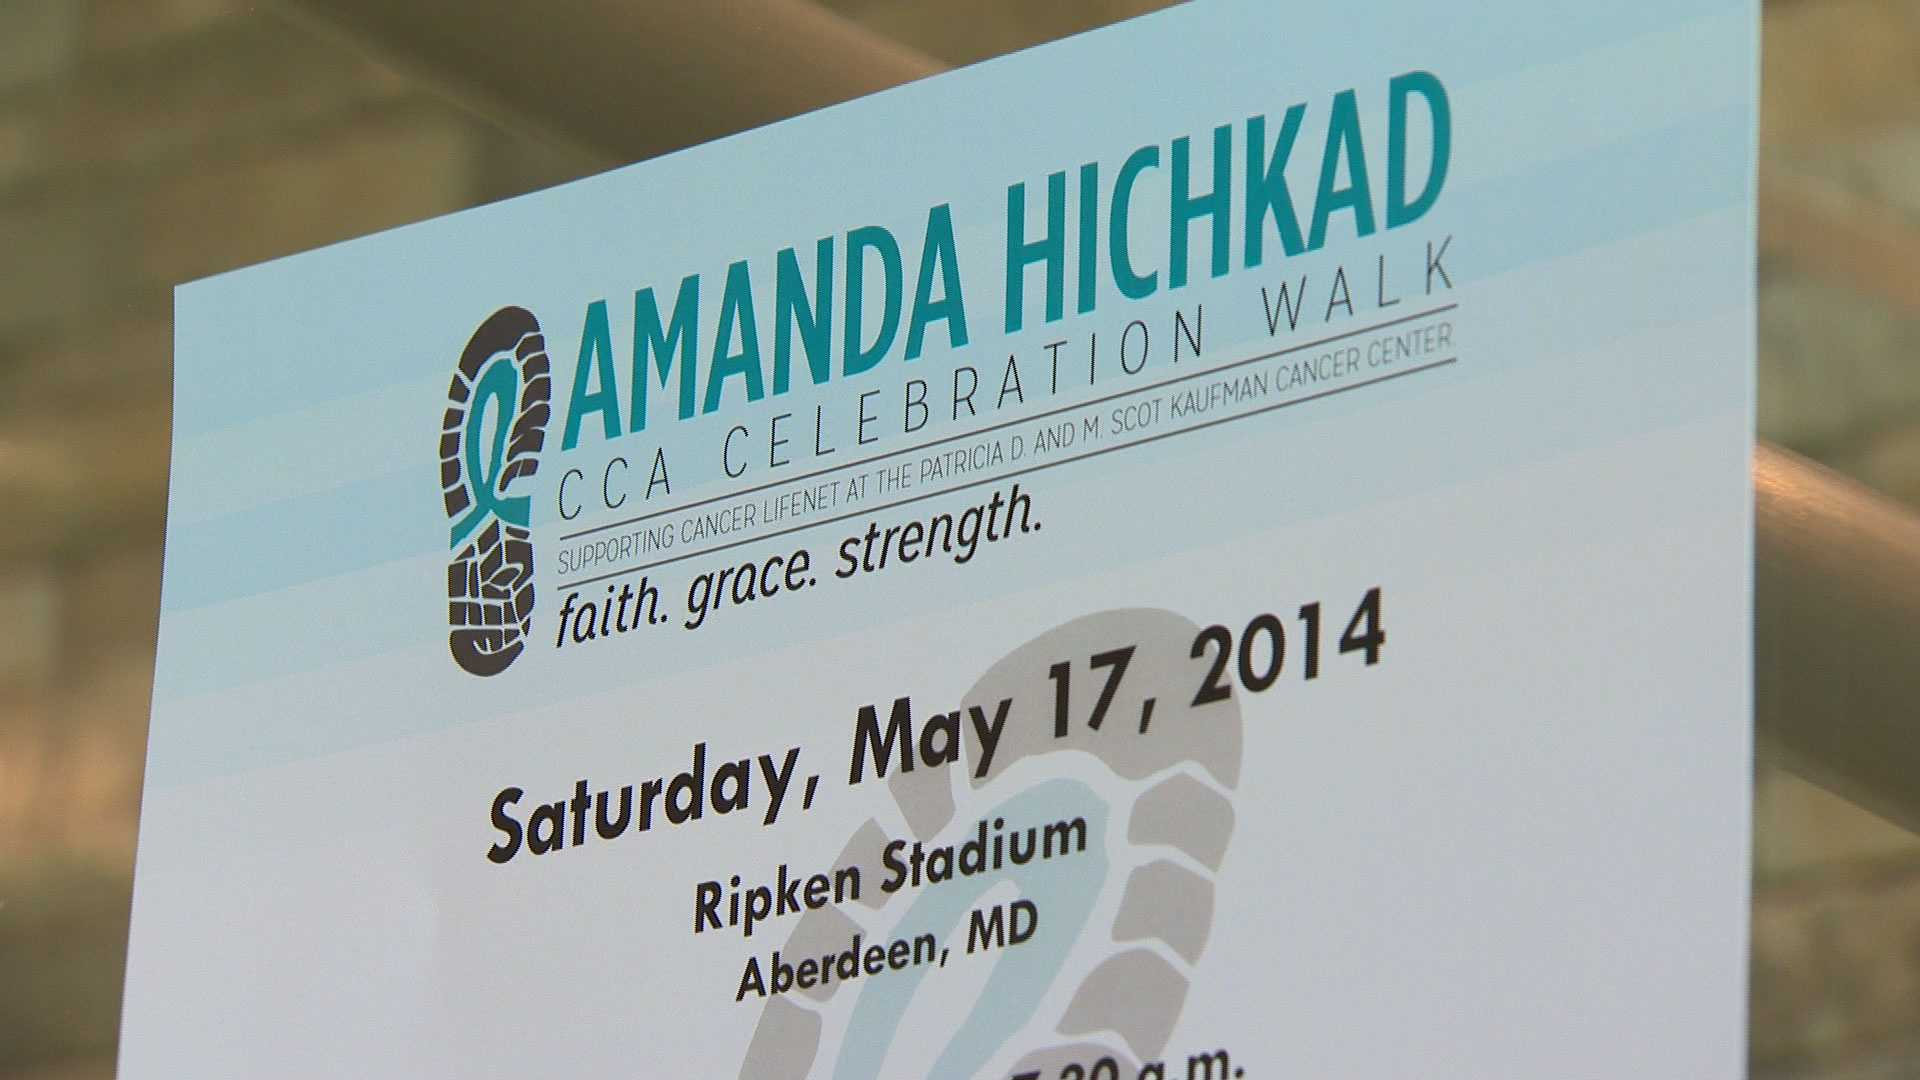 Amanda Hichkad CCA Celebration Walk